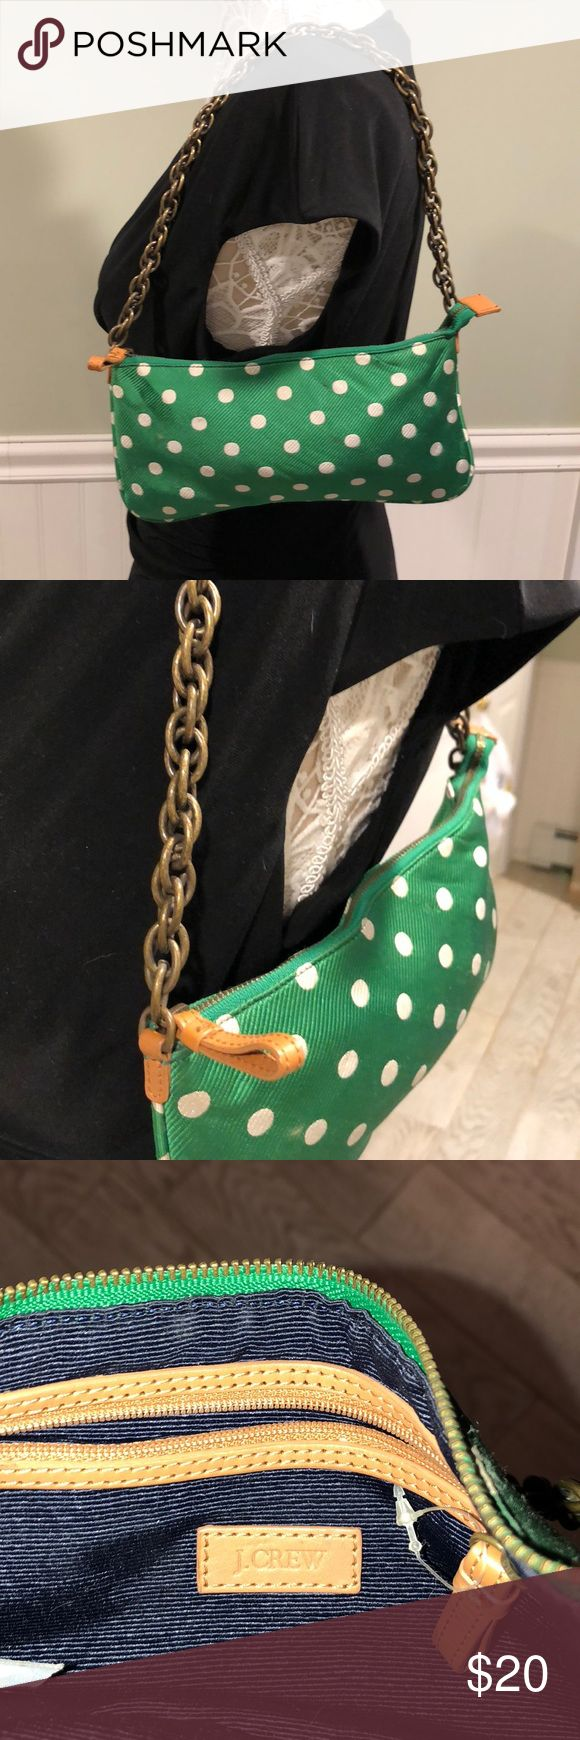 I️. Crew Little Green Polka Dot Shoulder Bag Green fabric with embossed stripe and white polka dots with a heavy brass tone chain handle J Crew Bags Mini Bags